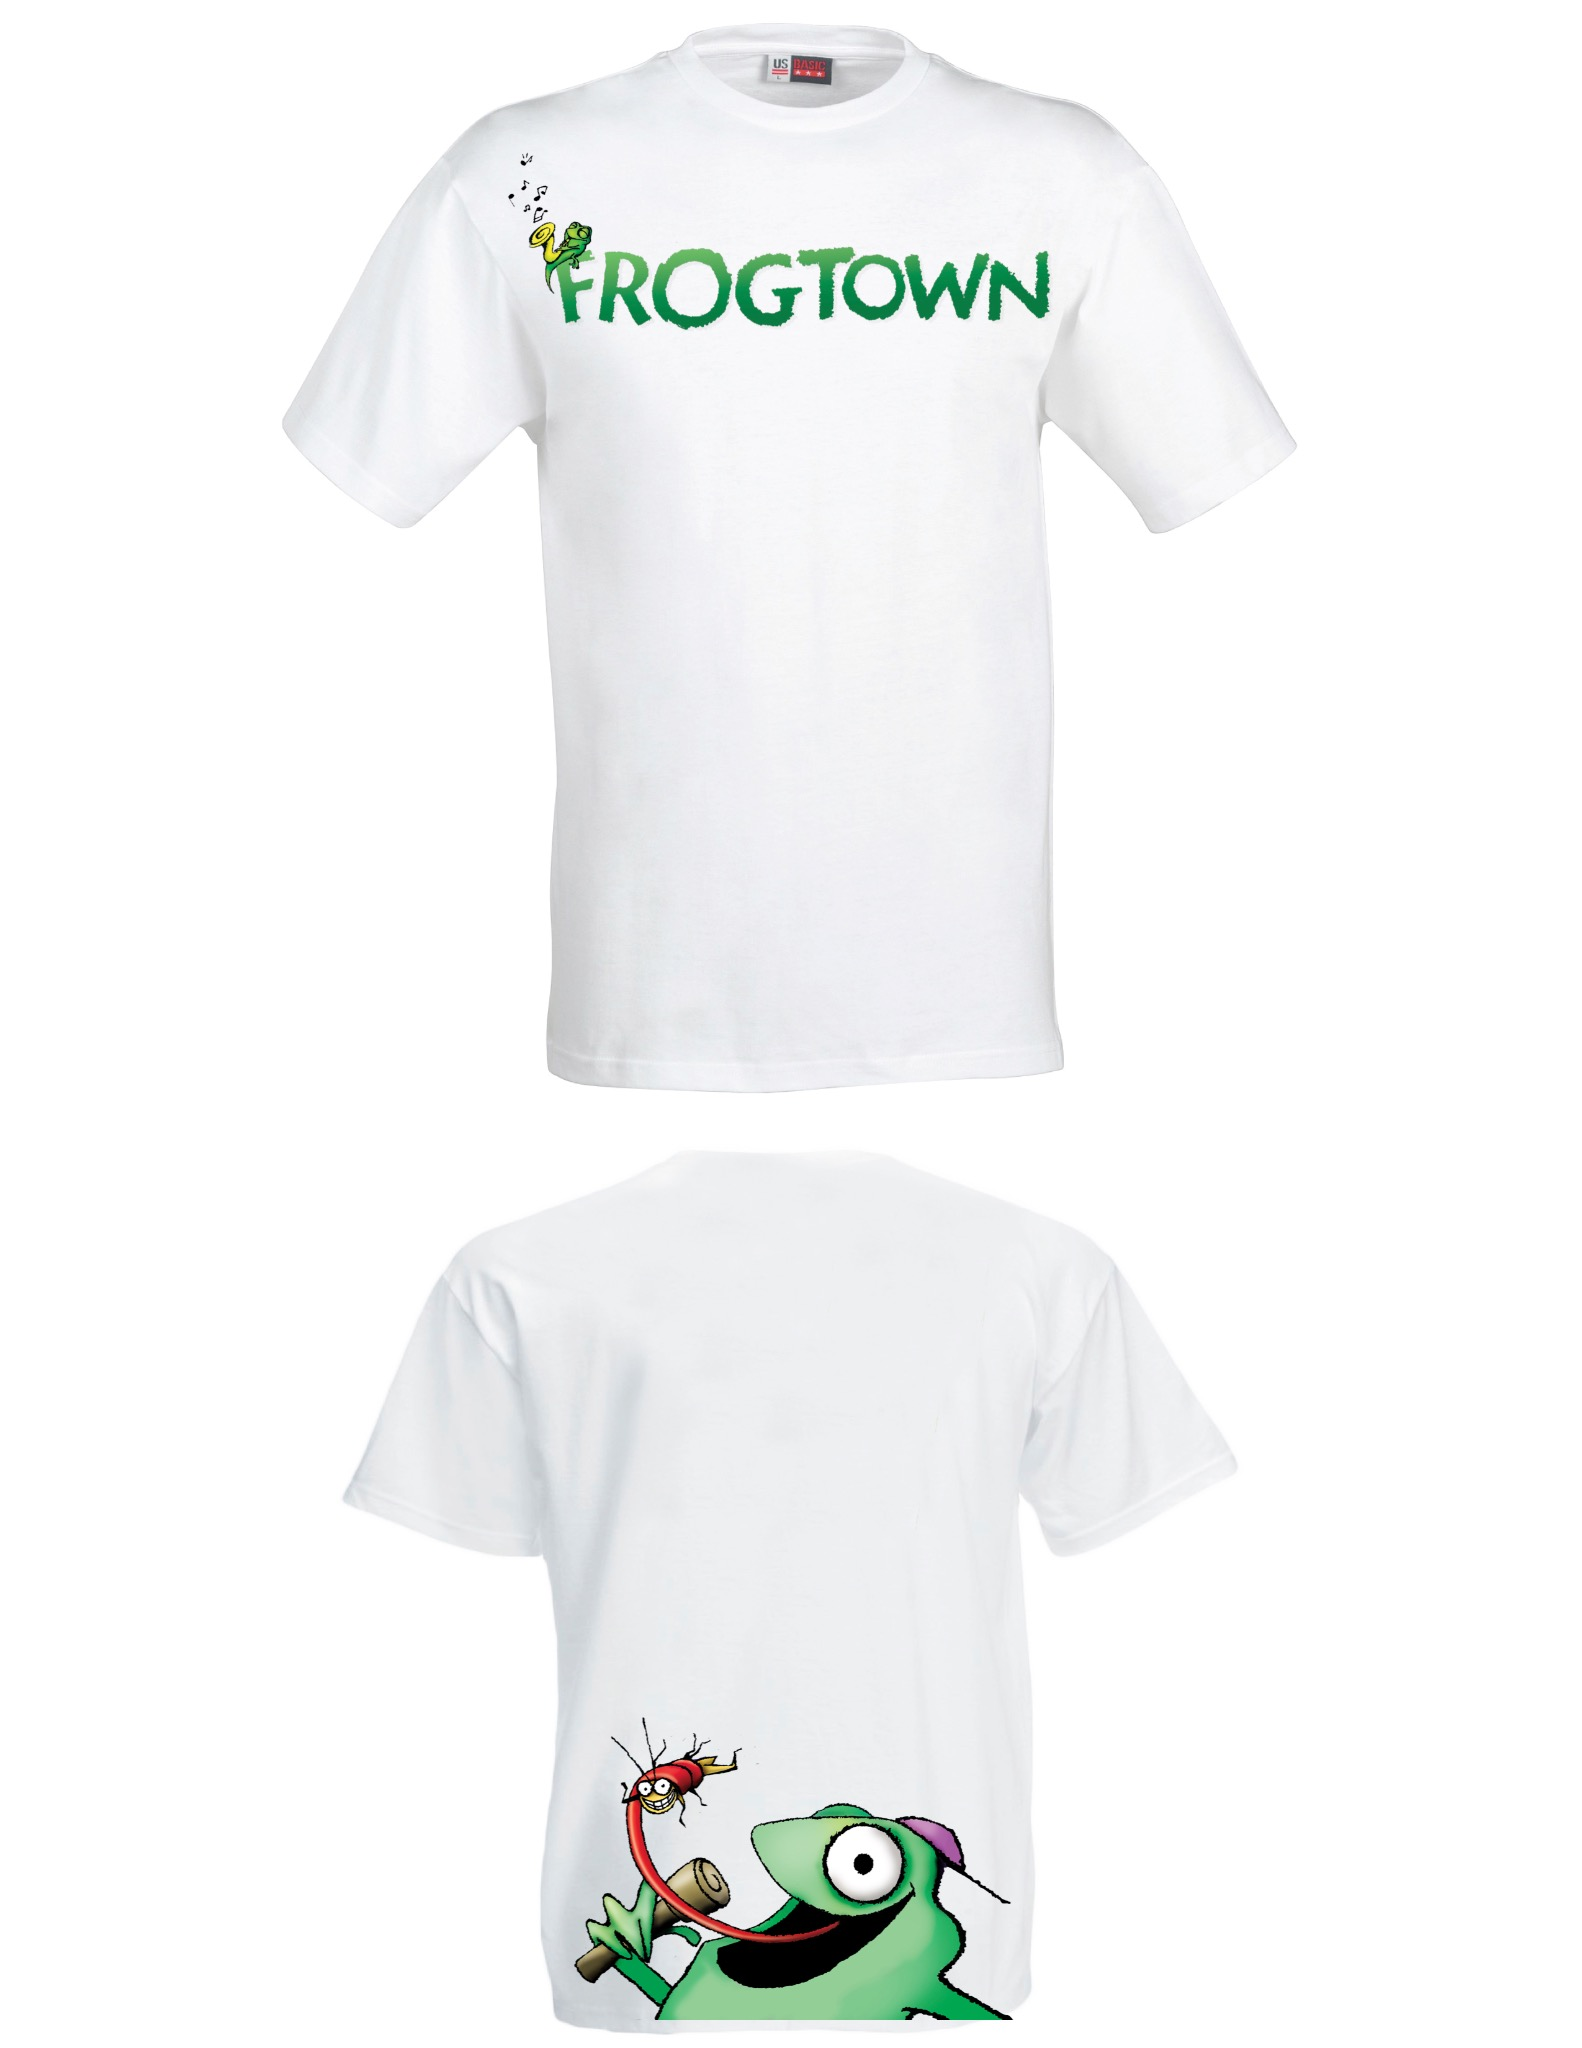 FROGTOWN T-SHIRTS            DOUBLE SIDED DESIGN    100% Cotton